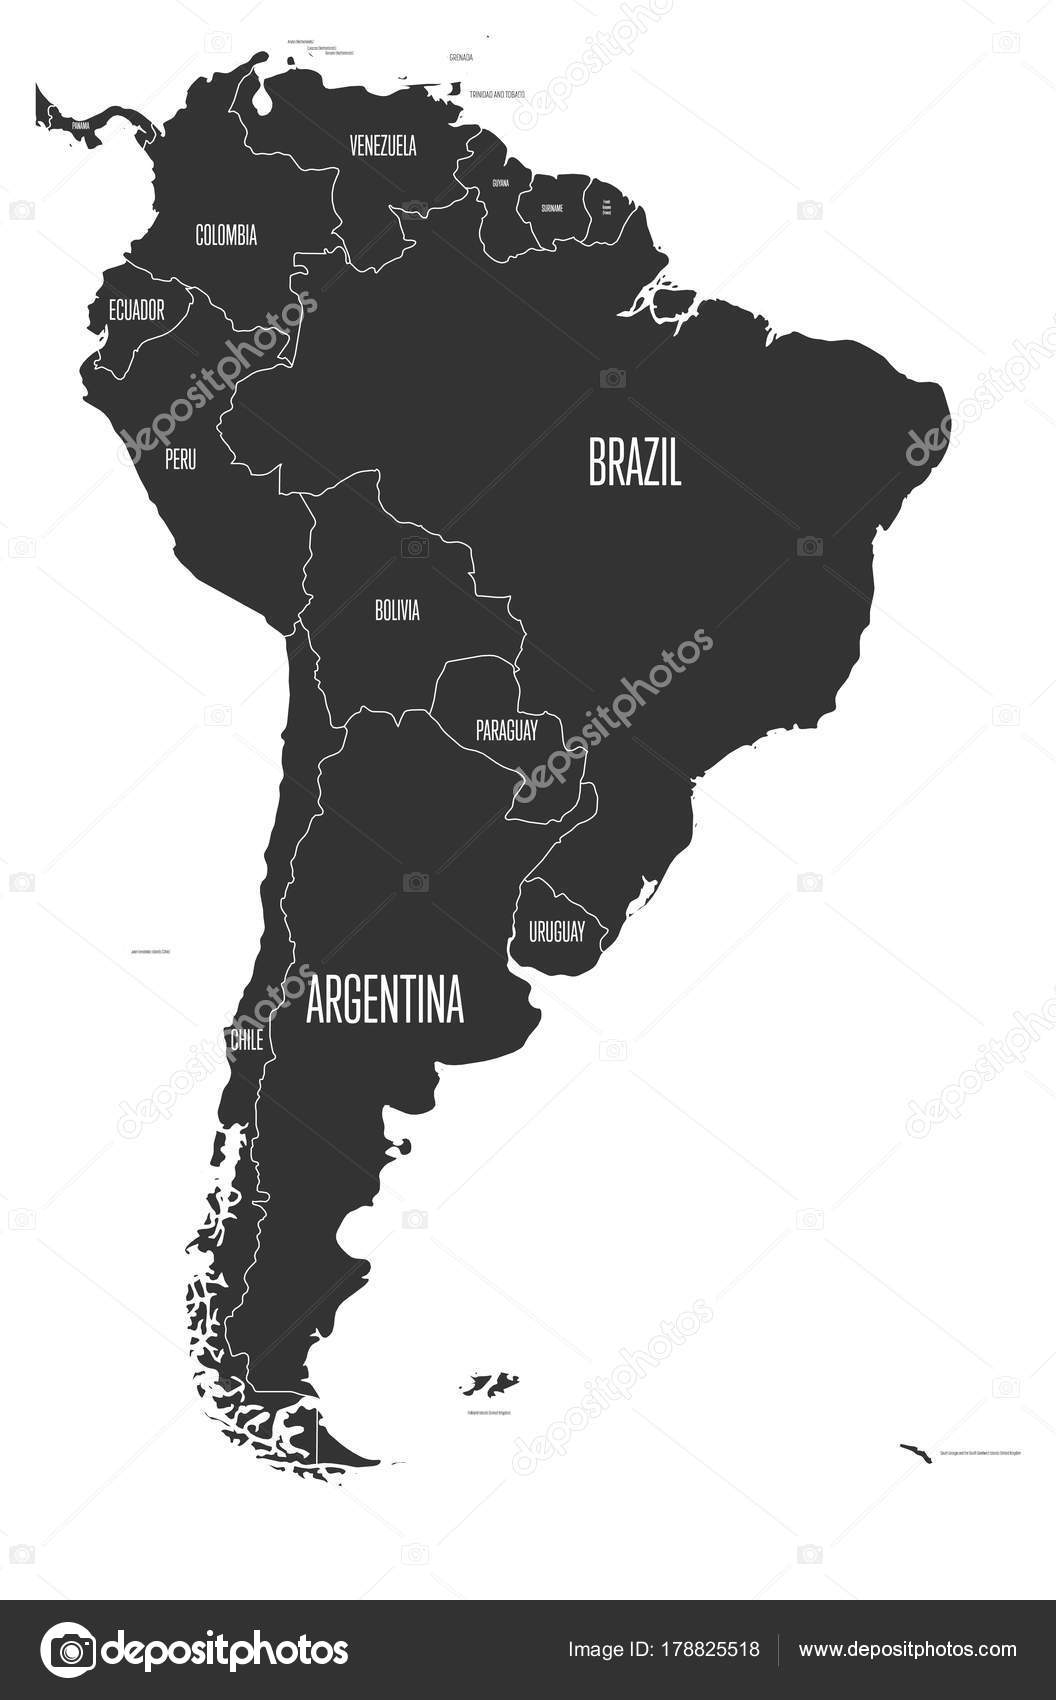 Political map of south america simple flat vector map with country political map of south america simple flat vector map with country name labels in grey gumiabroncs Choice Image